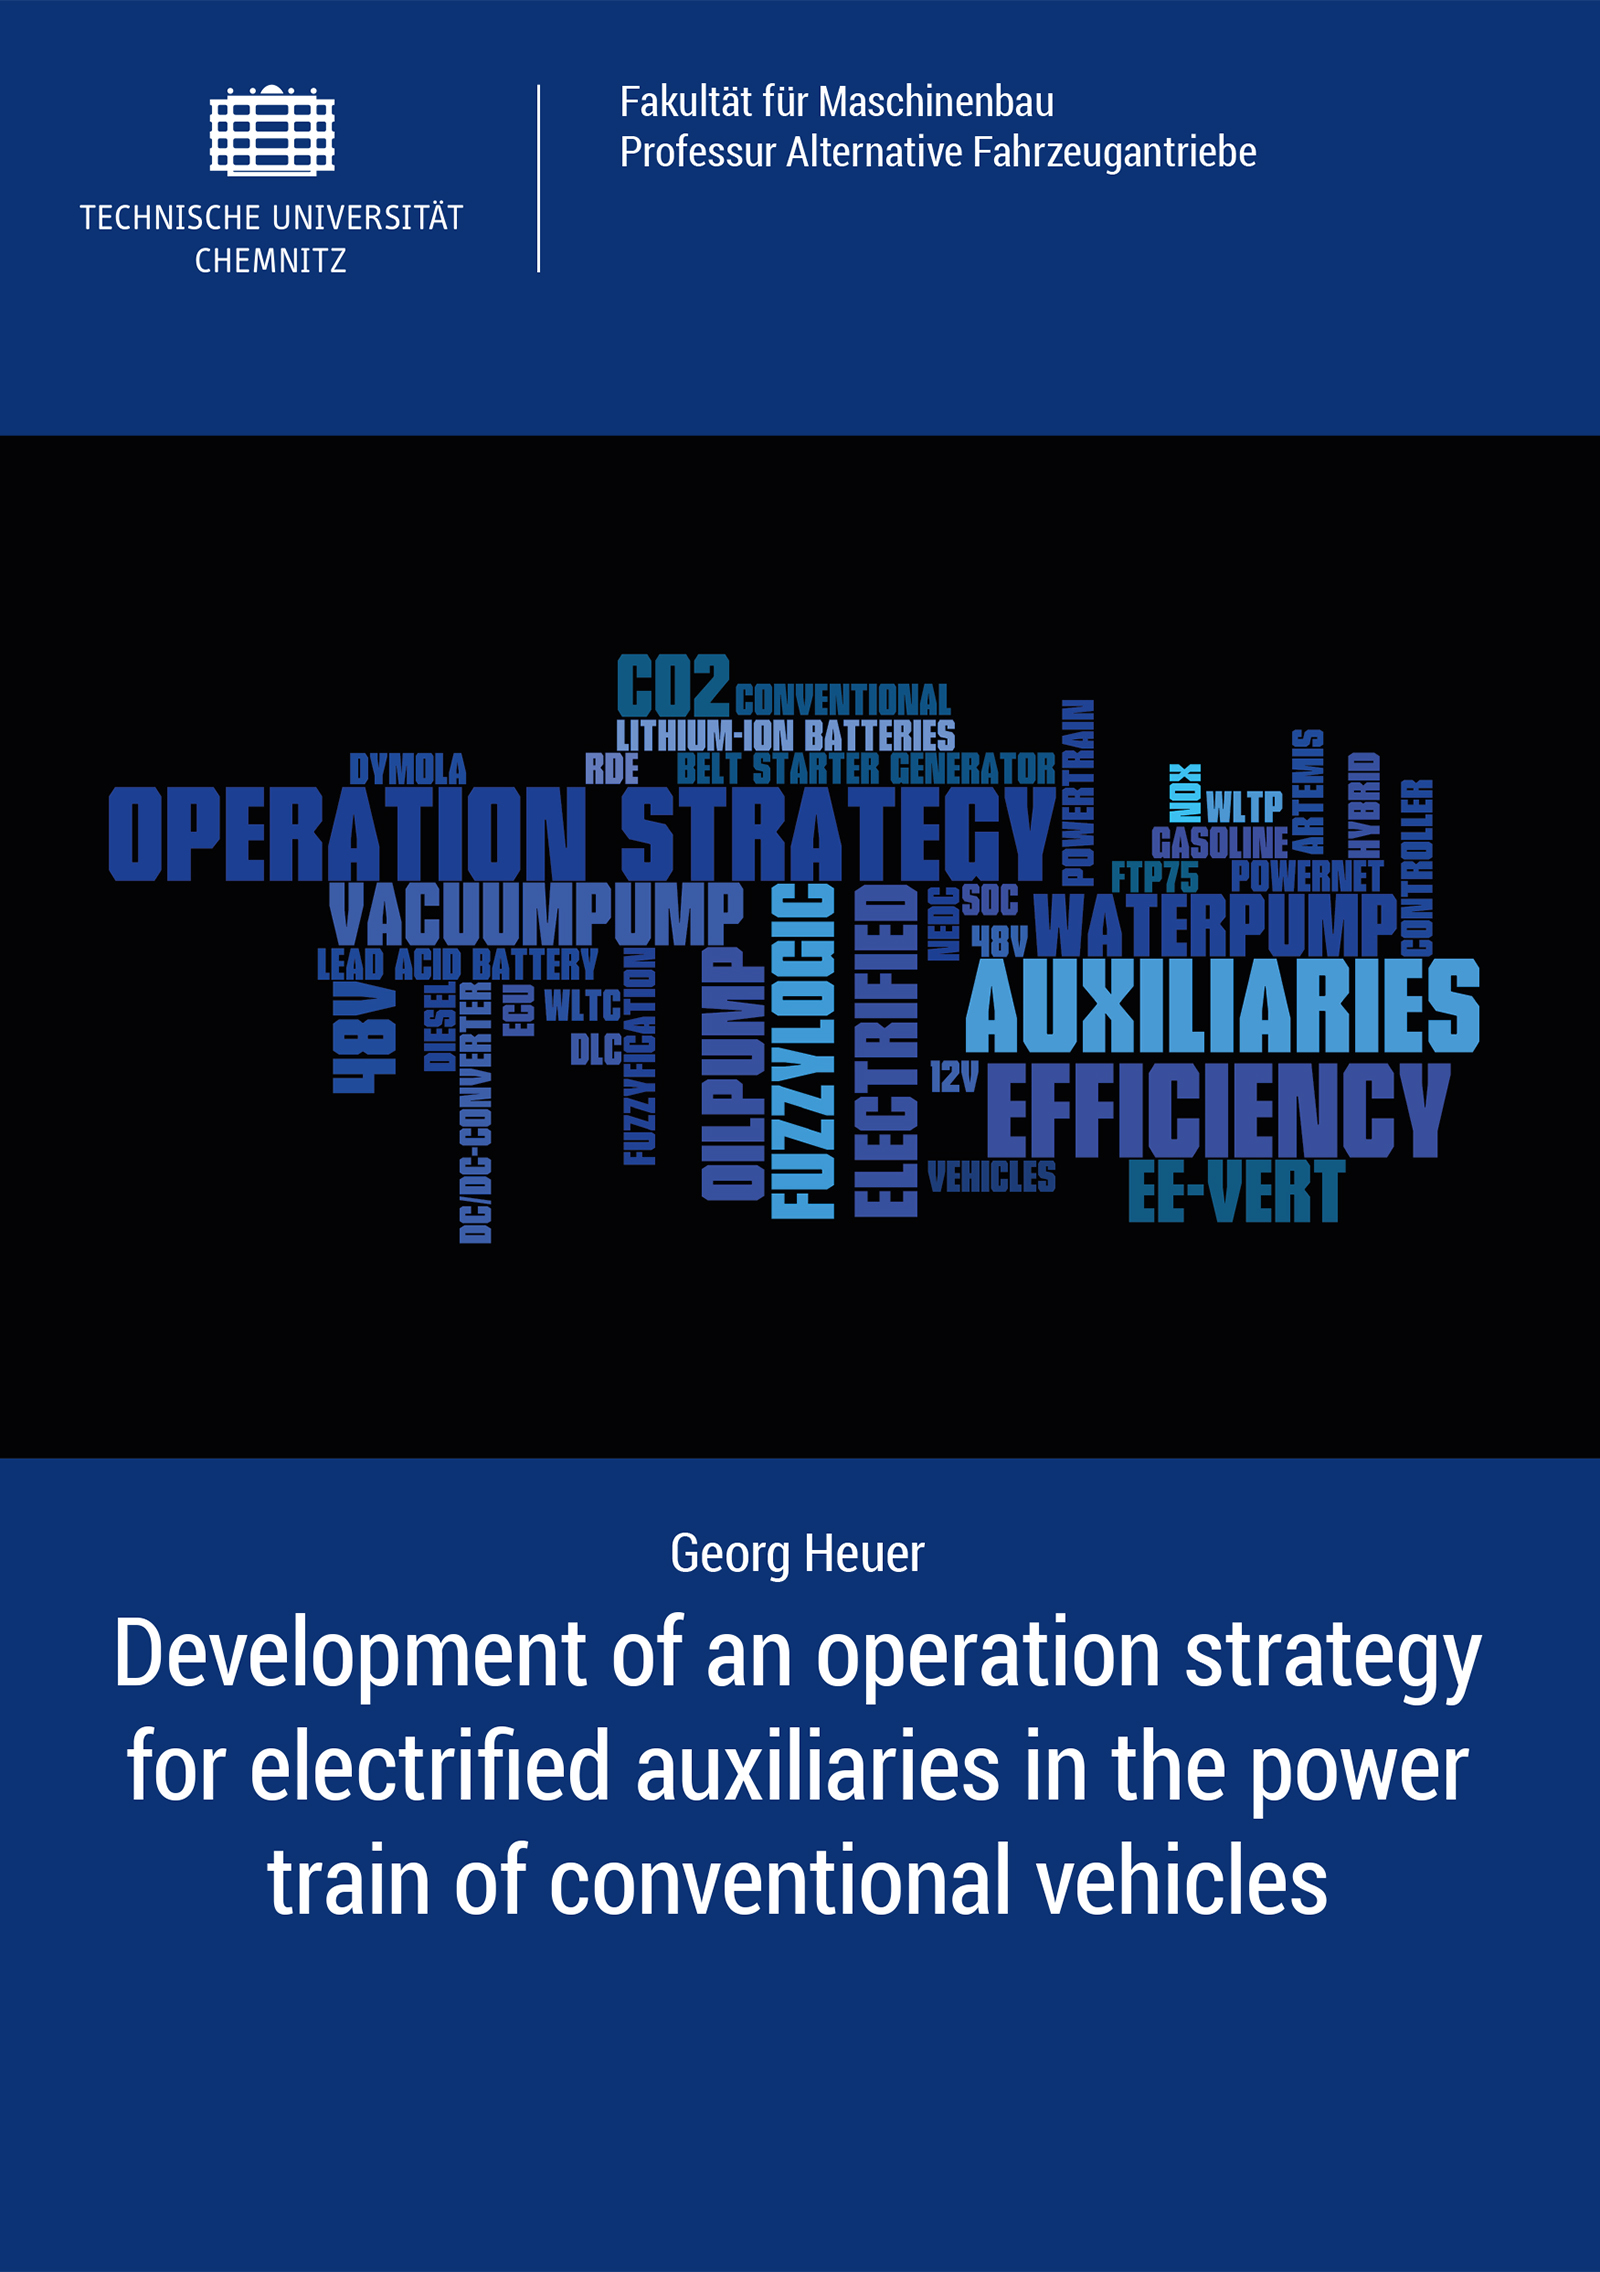 Cover: Development of an operation strategy for electrifed auuiliaries in the power train of conventional vehicles